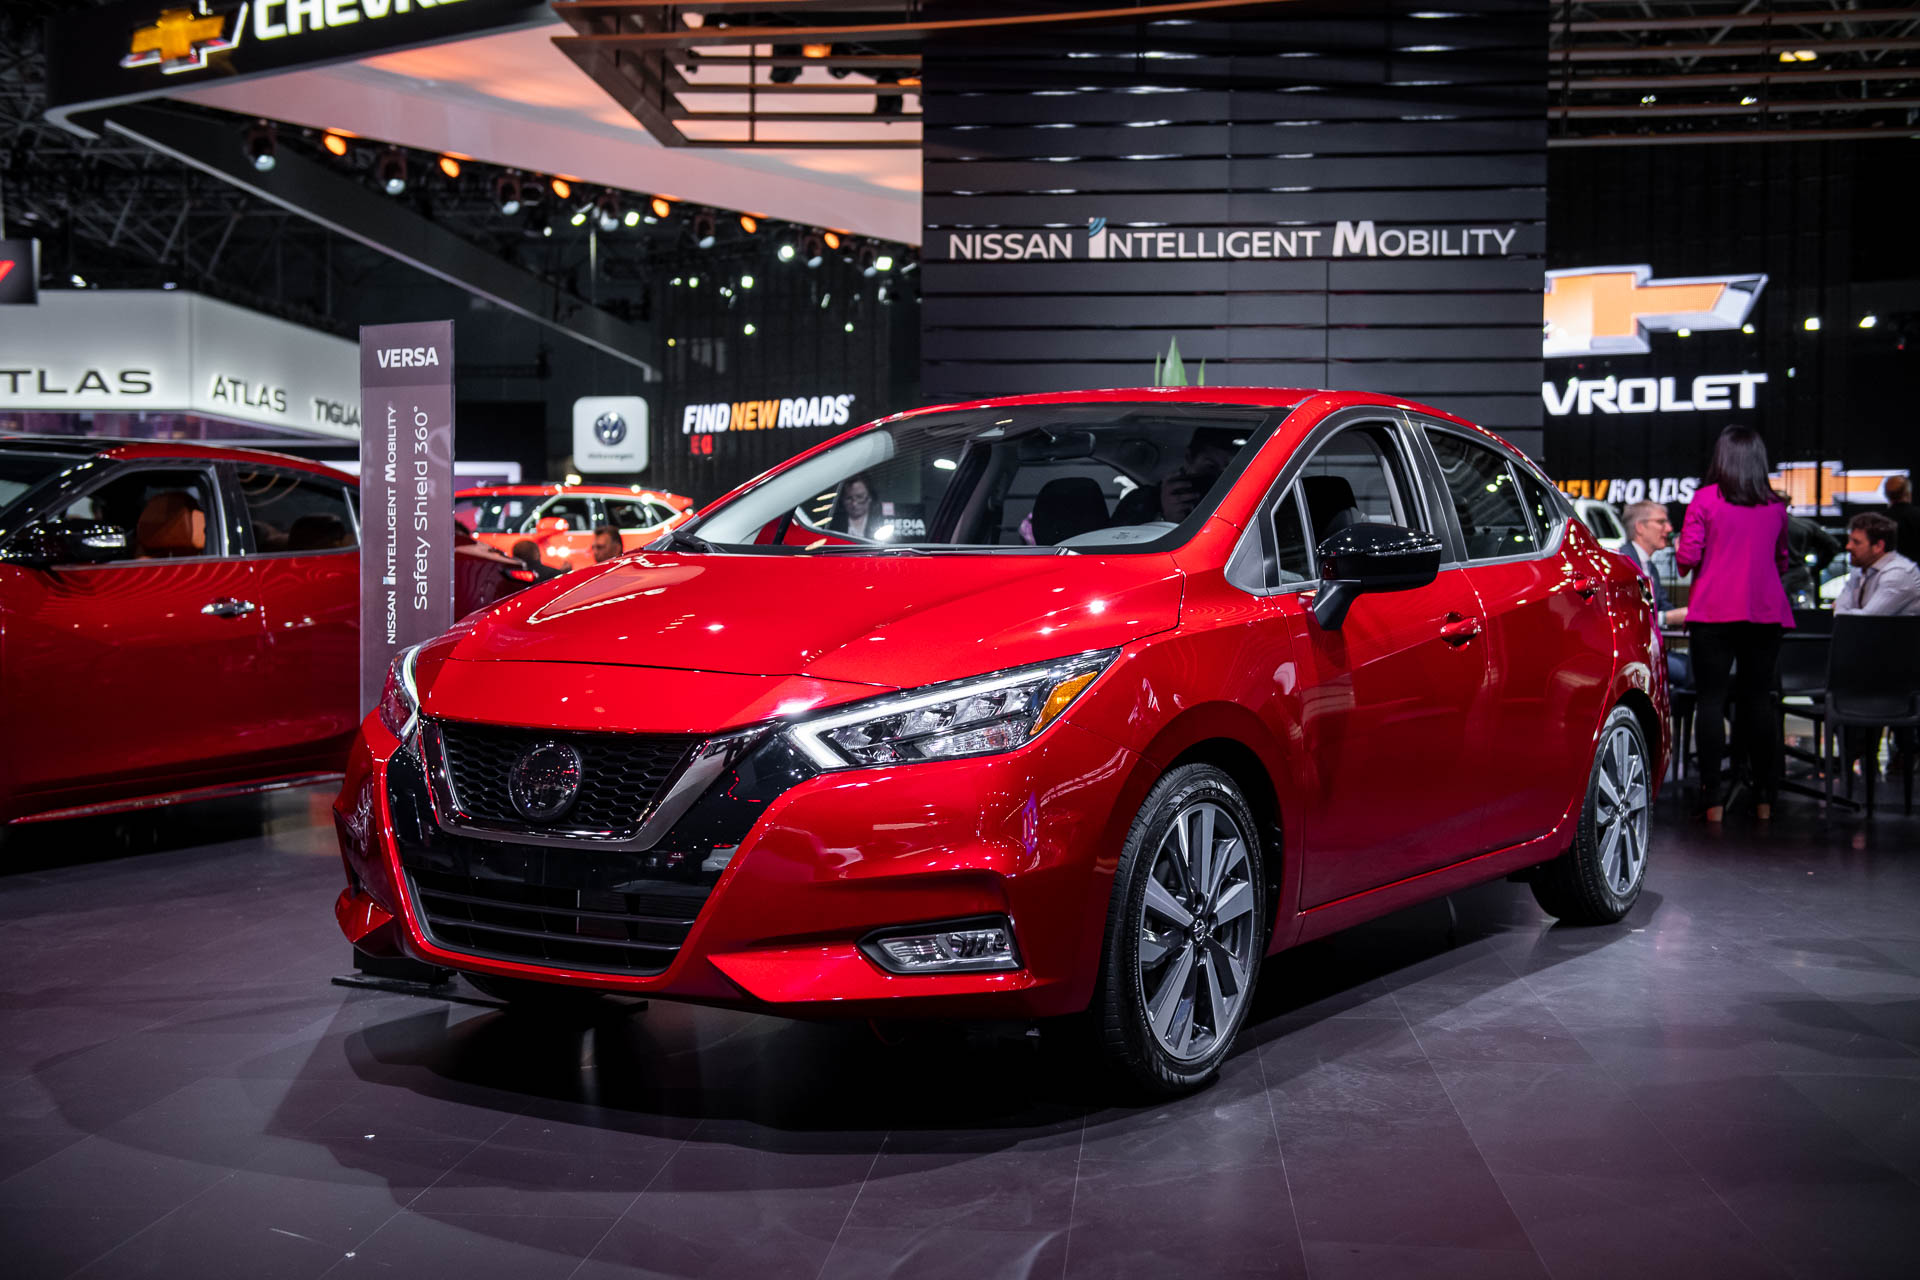 2020 Nissan Versa Revealed Honey I Shrunk The Altima